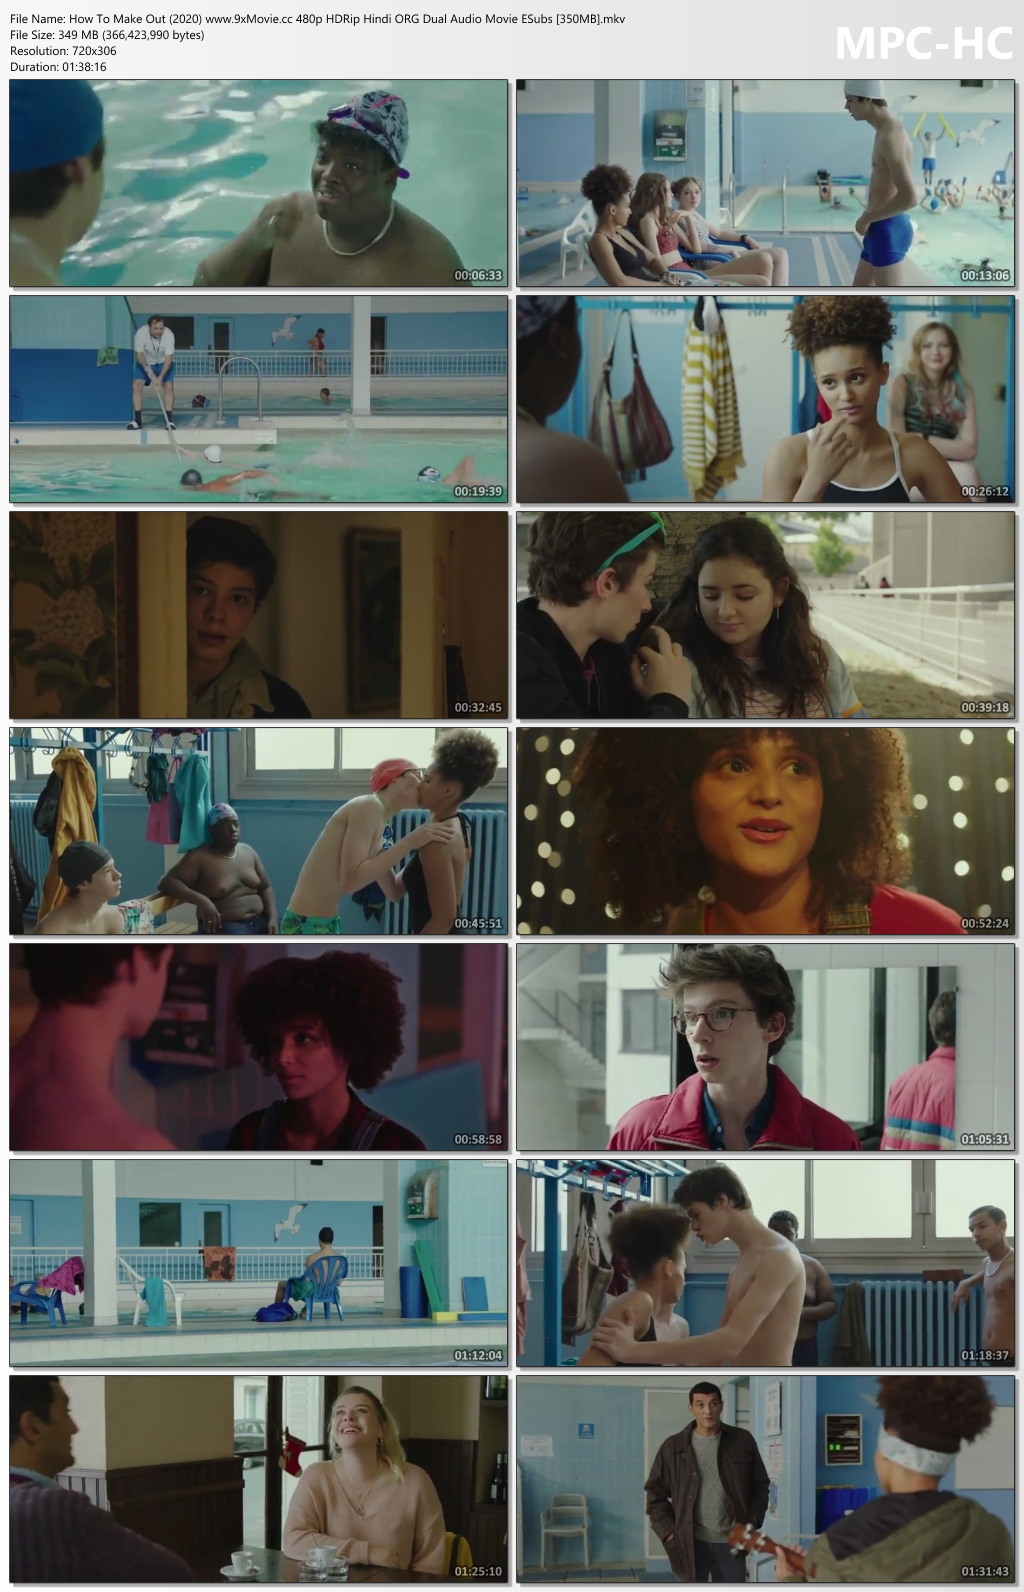 How-To-Make-Out-2020-www-9x-Movie-cc-480p-HDRip-Hindi-ORG-Dual-Audio-Movie-ESubs-350-MB-mkv